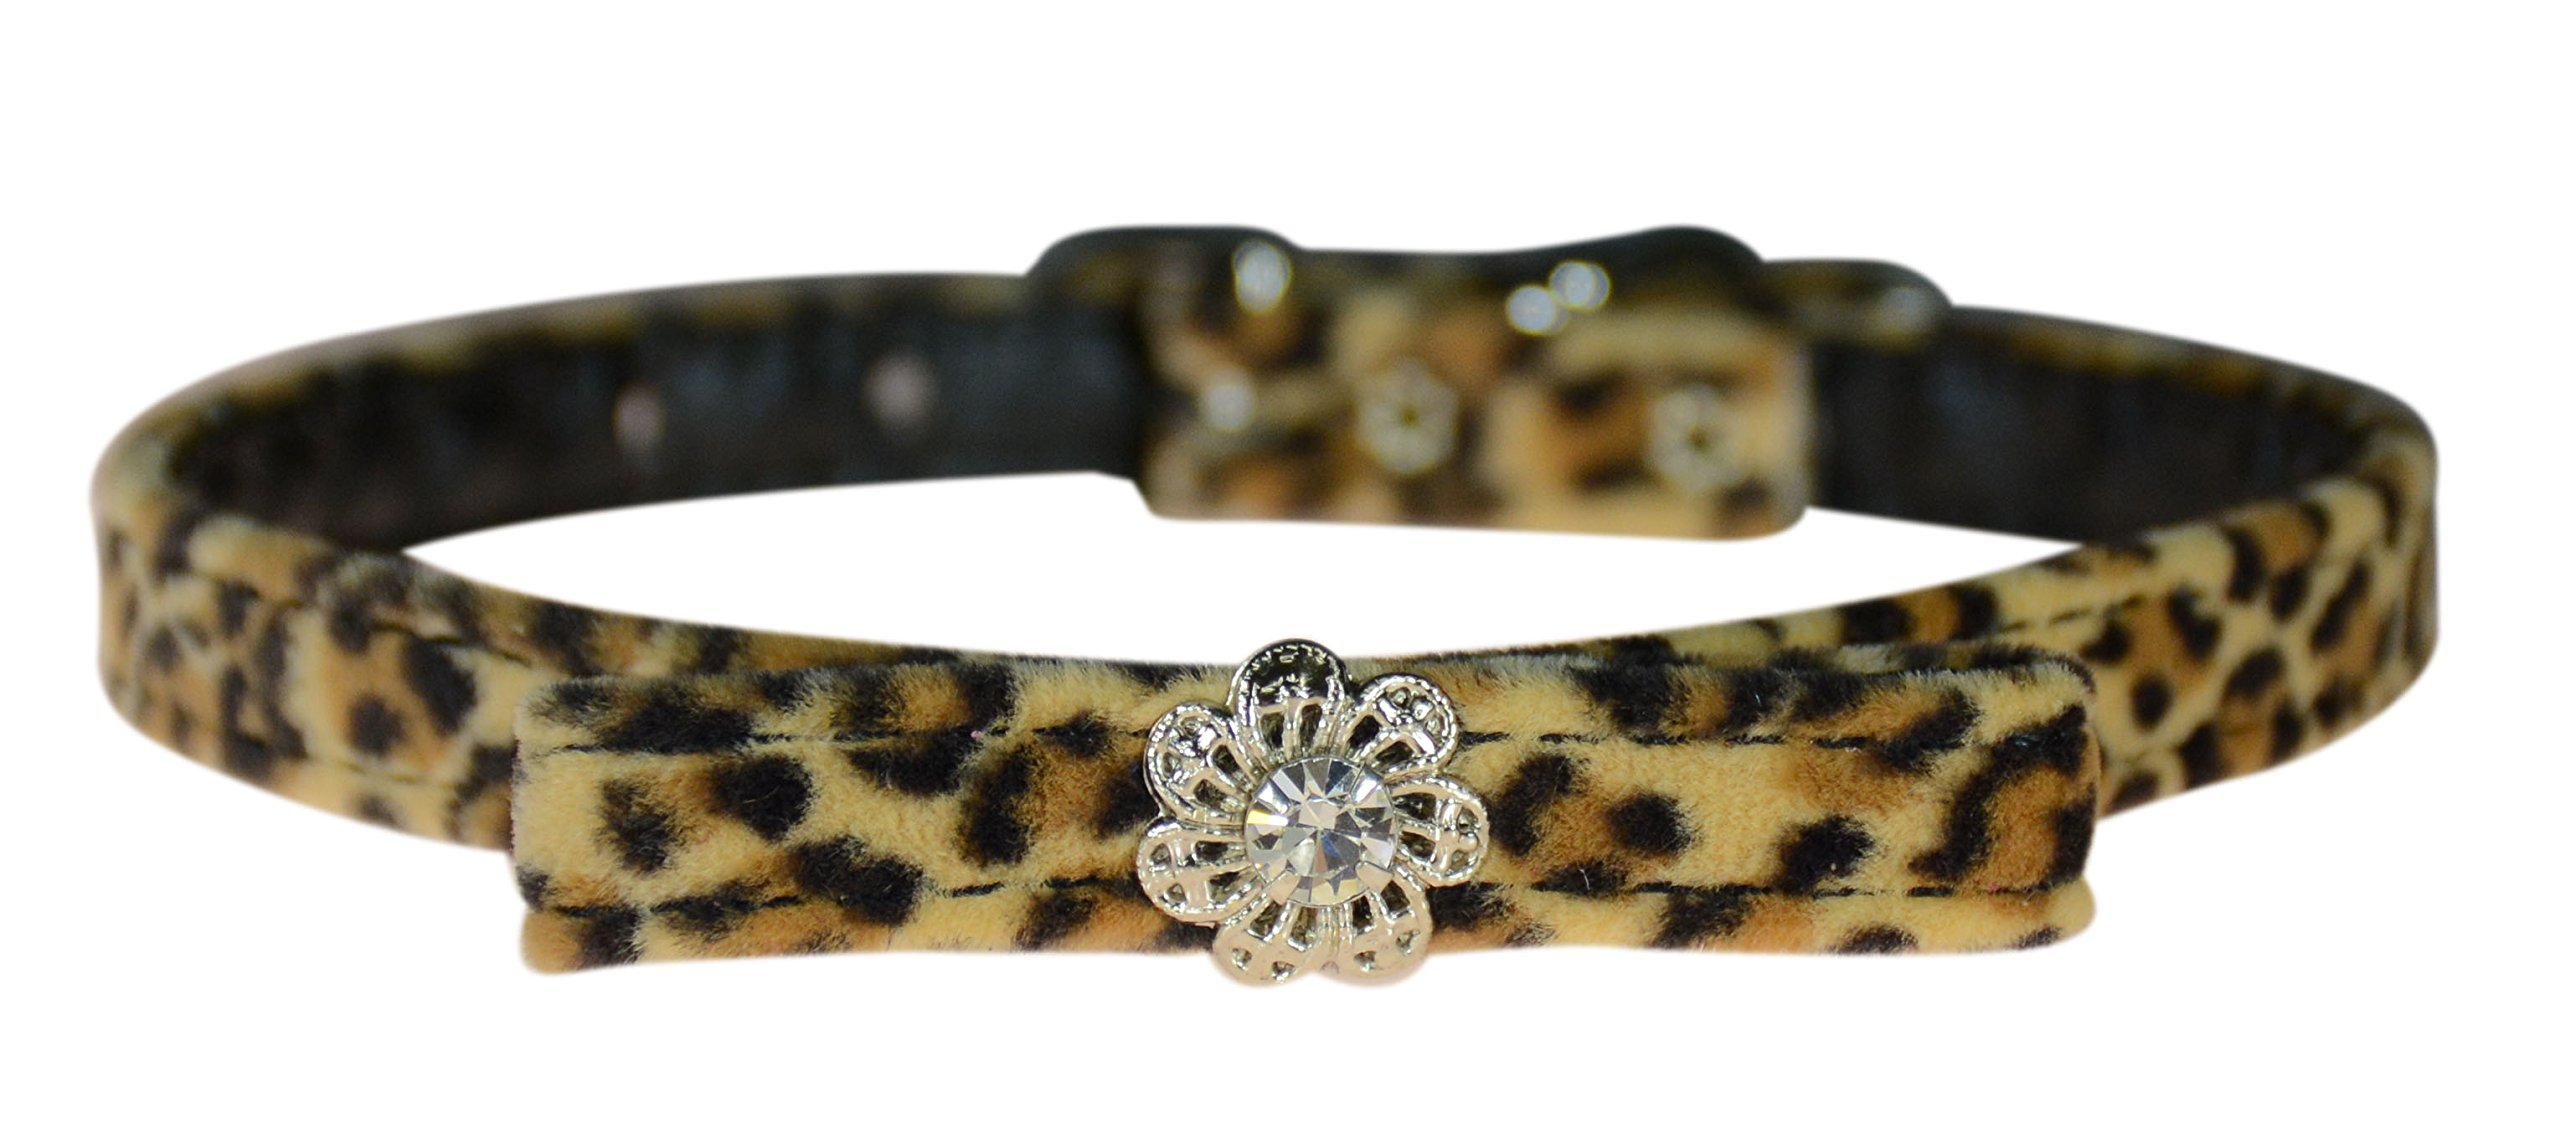 Evans Collars 3/8'' Jeweled and Filigree Collar with Bow, Size 14, Animal Prints, Leopard